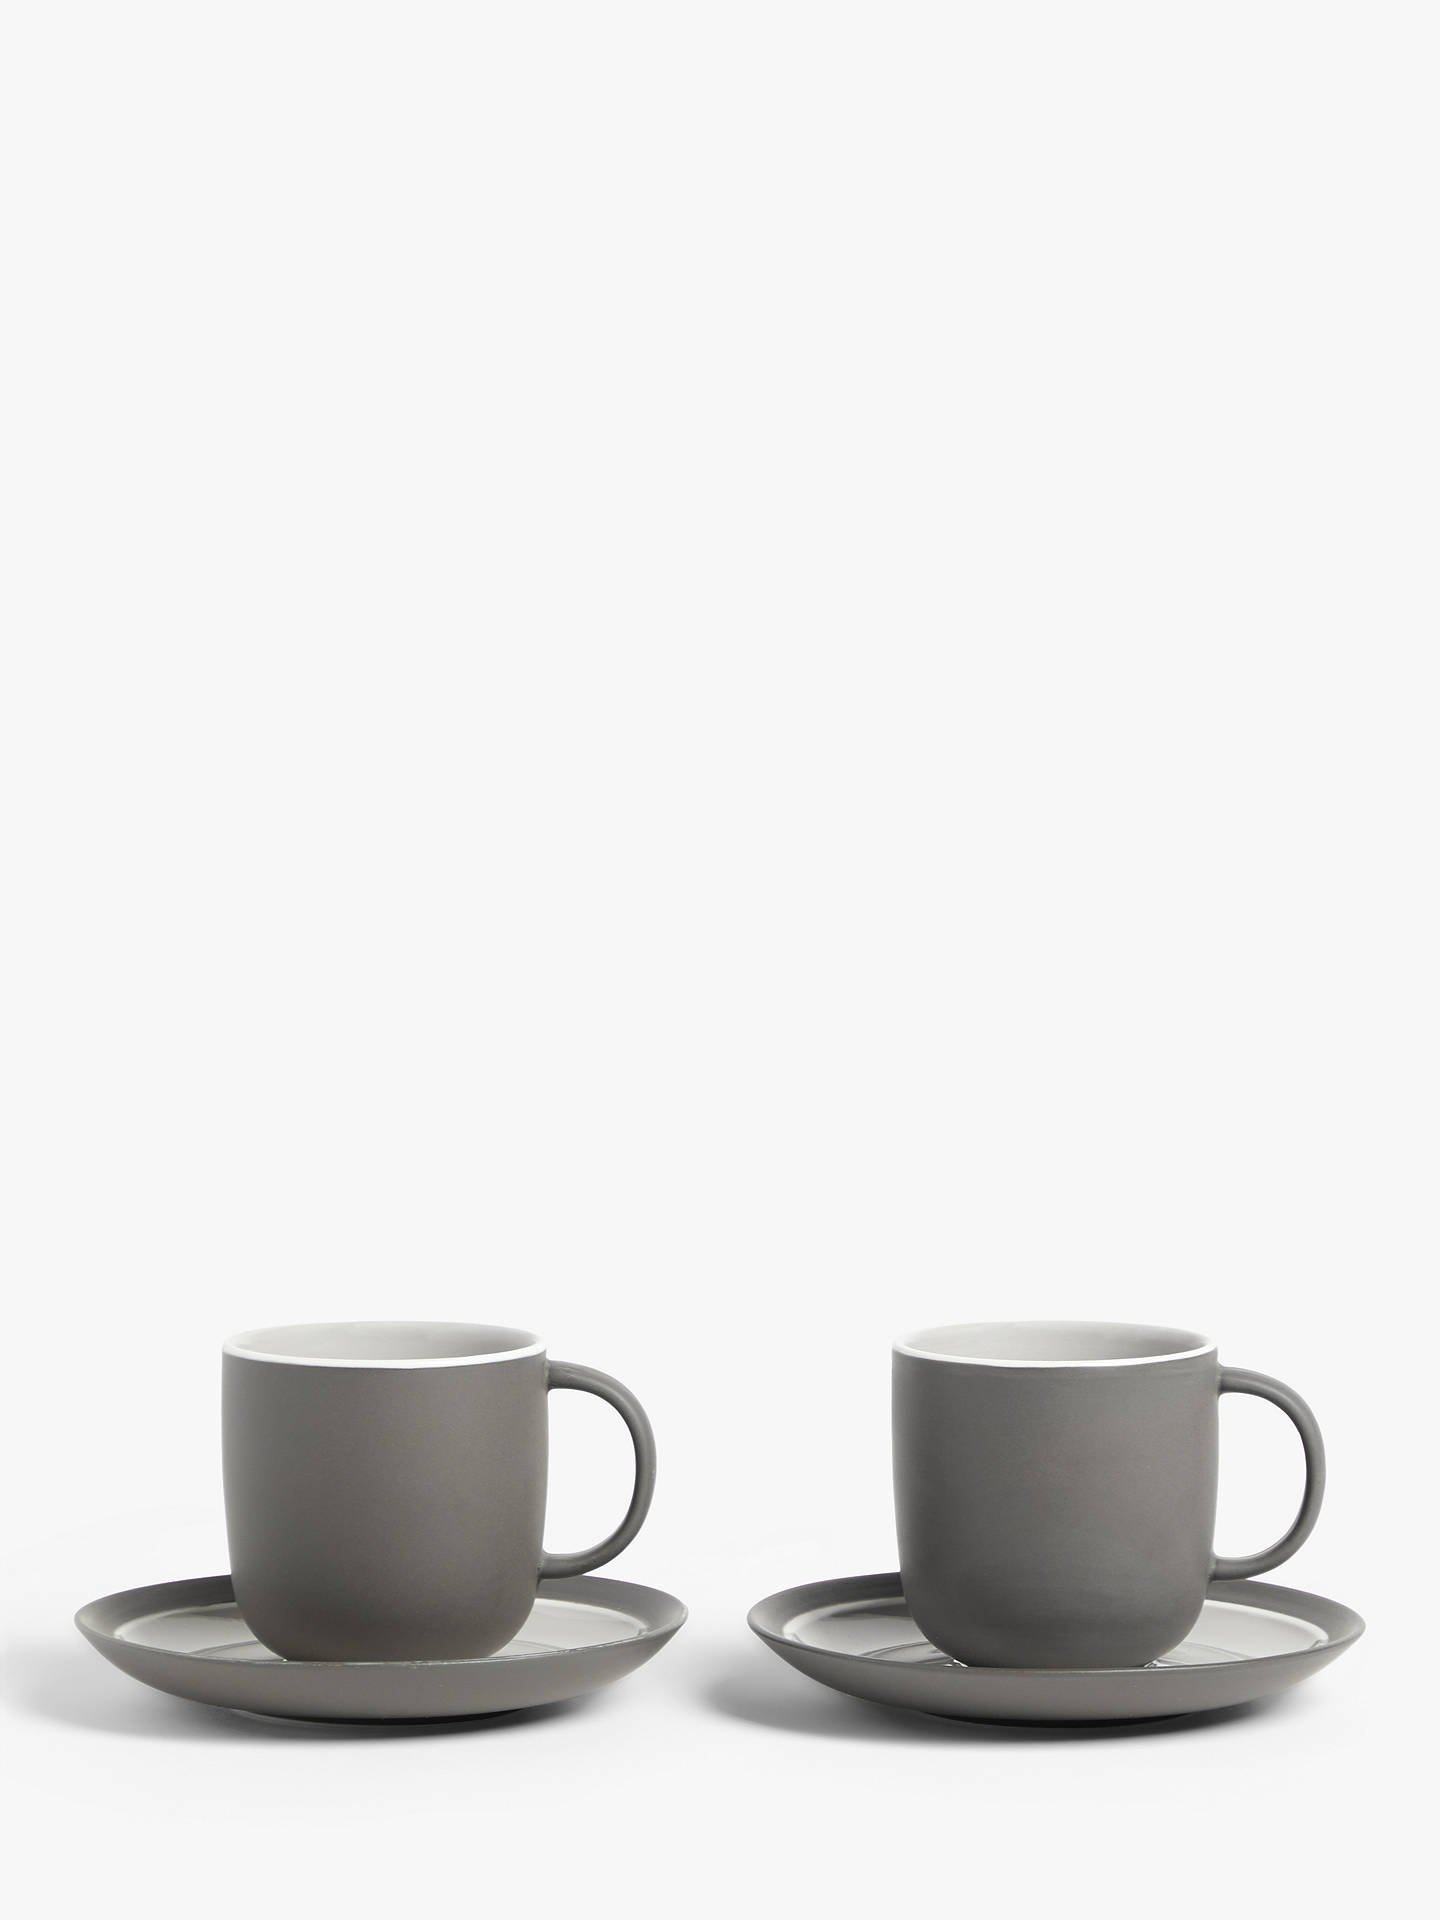 Buy John Lewis & Partners Puritan Cup & Saucer, Set of 2, 250ml, Dark Grey Online at johnlewis.com